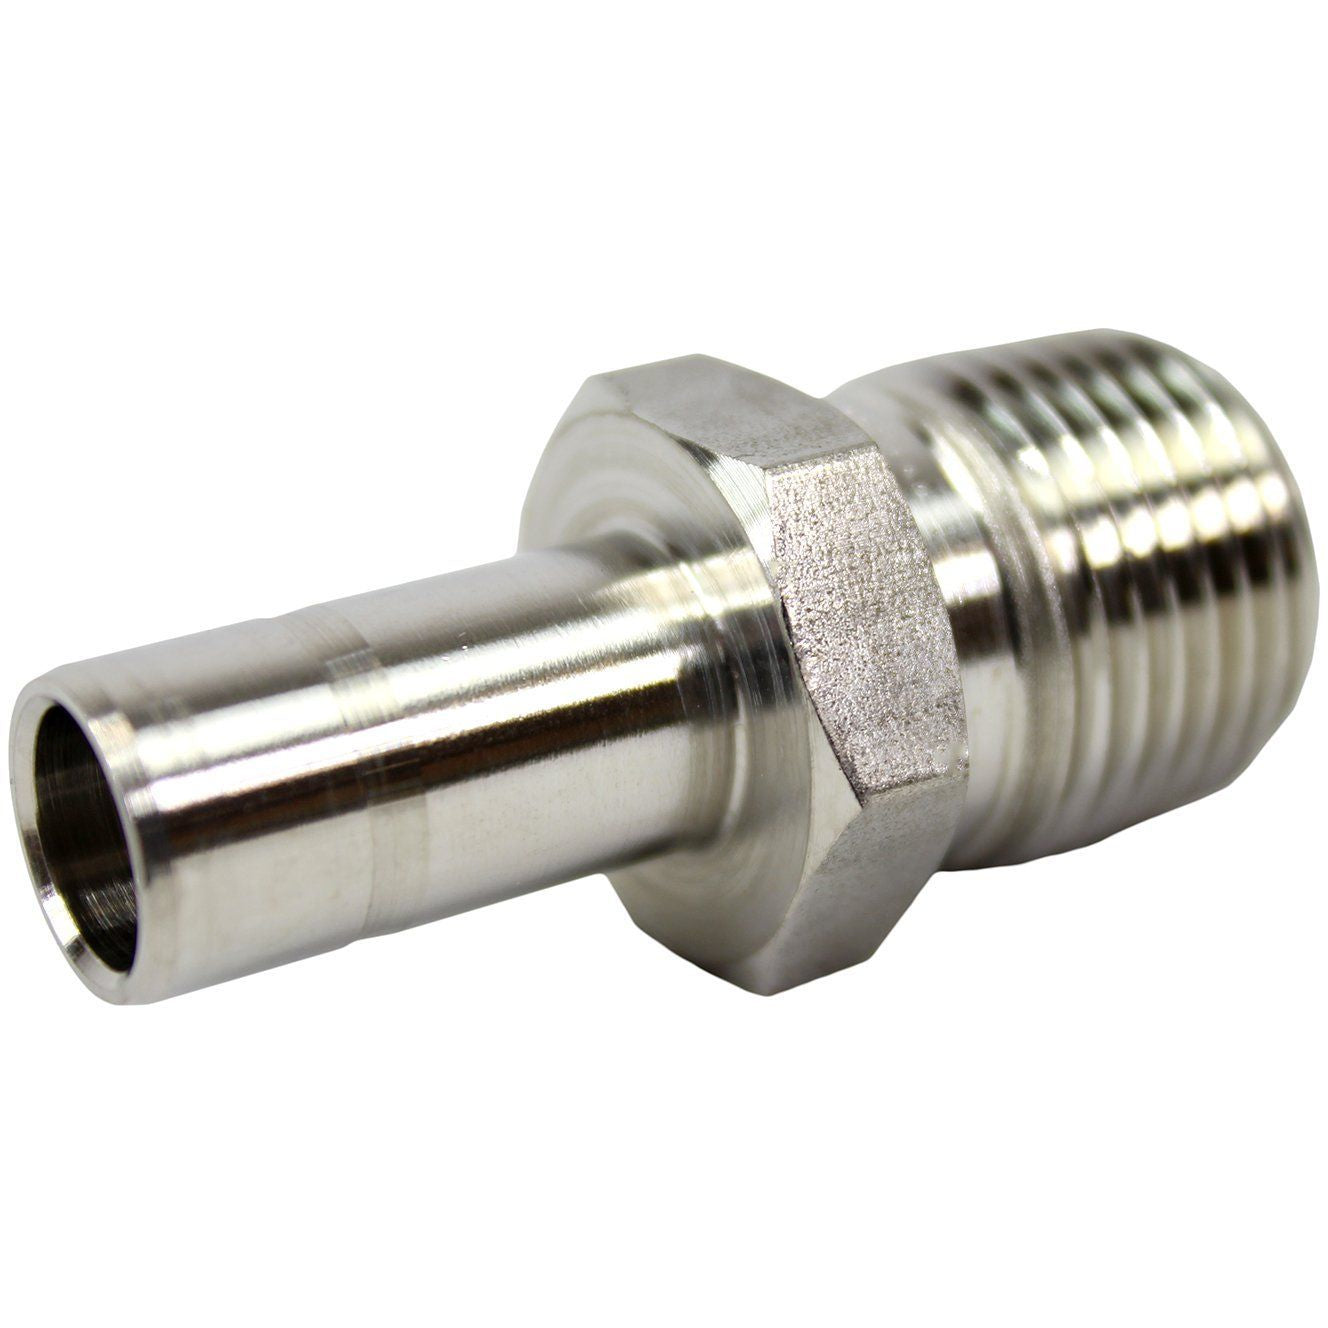 SSP - Male Adapter Shop All Categories SSP Corporation